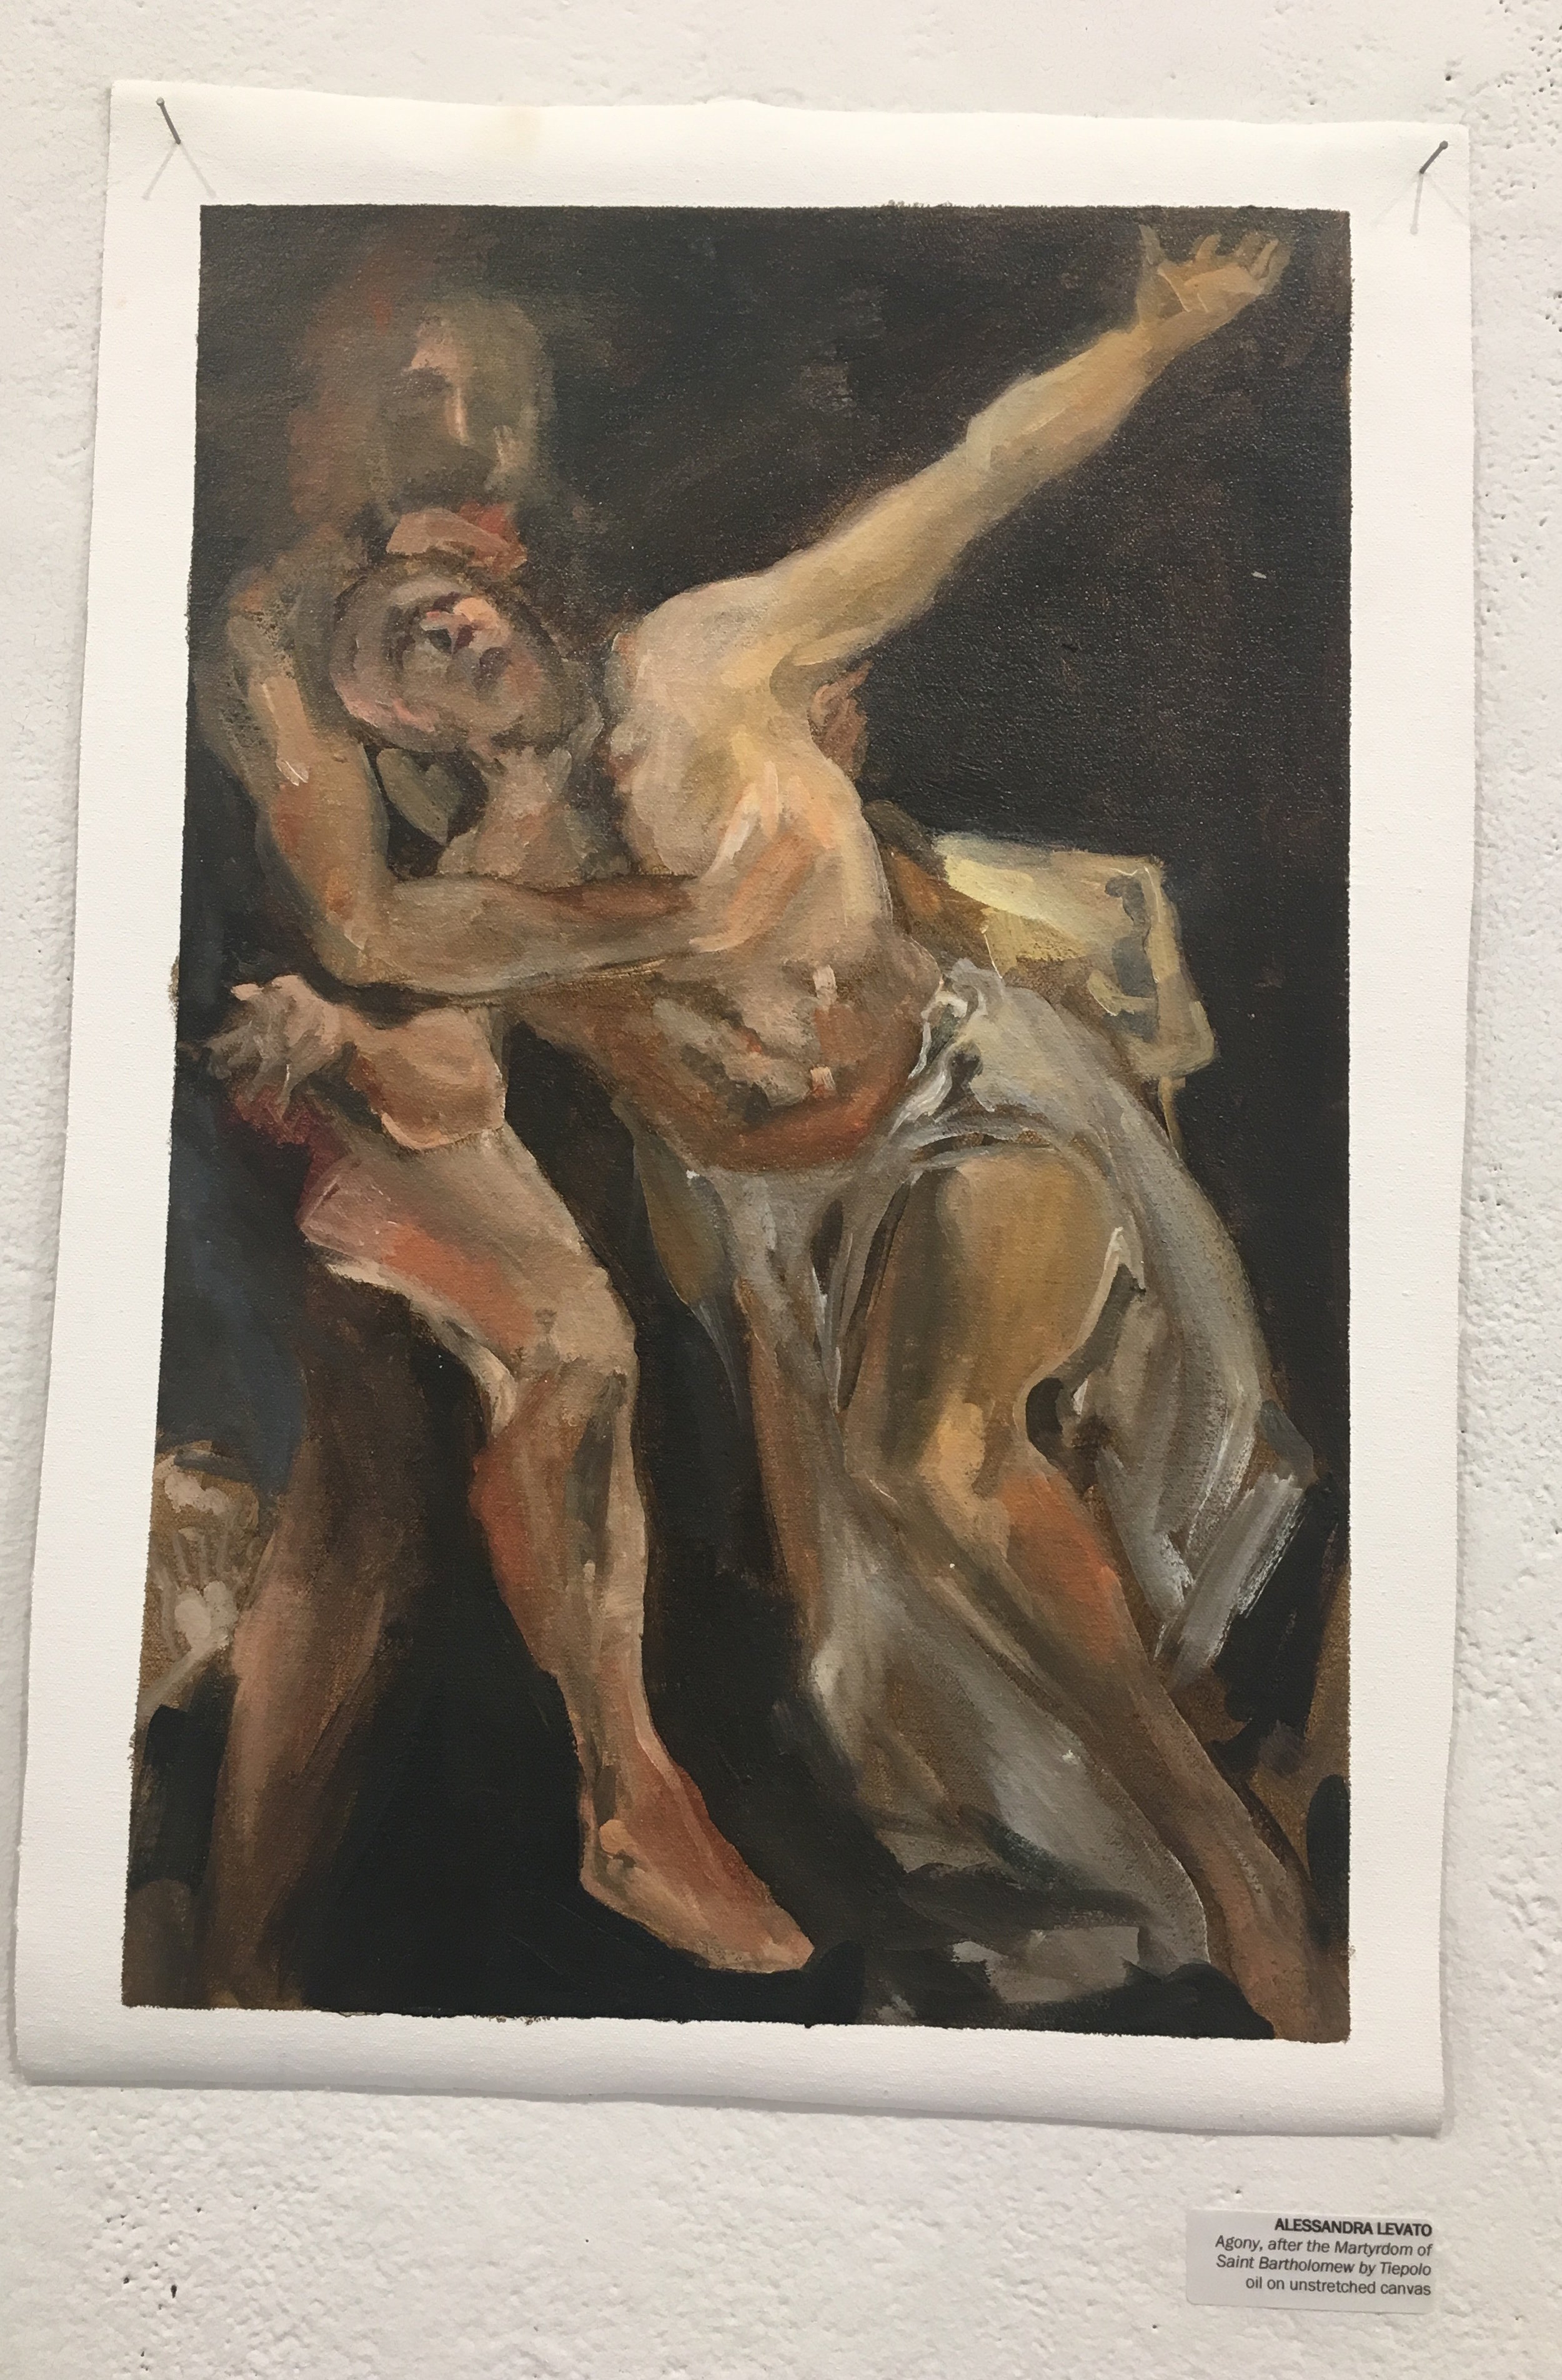 """Alessandra Levato, """"Agony, after the Martyrdom of Saint Bartholomew by Tiepolo"""" (oil on unstretched canvas)"""